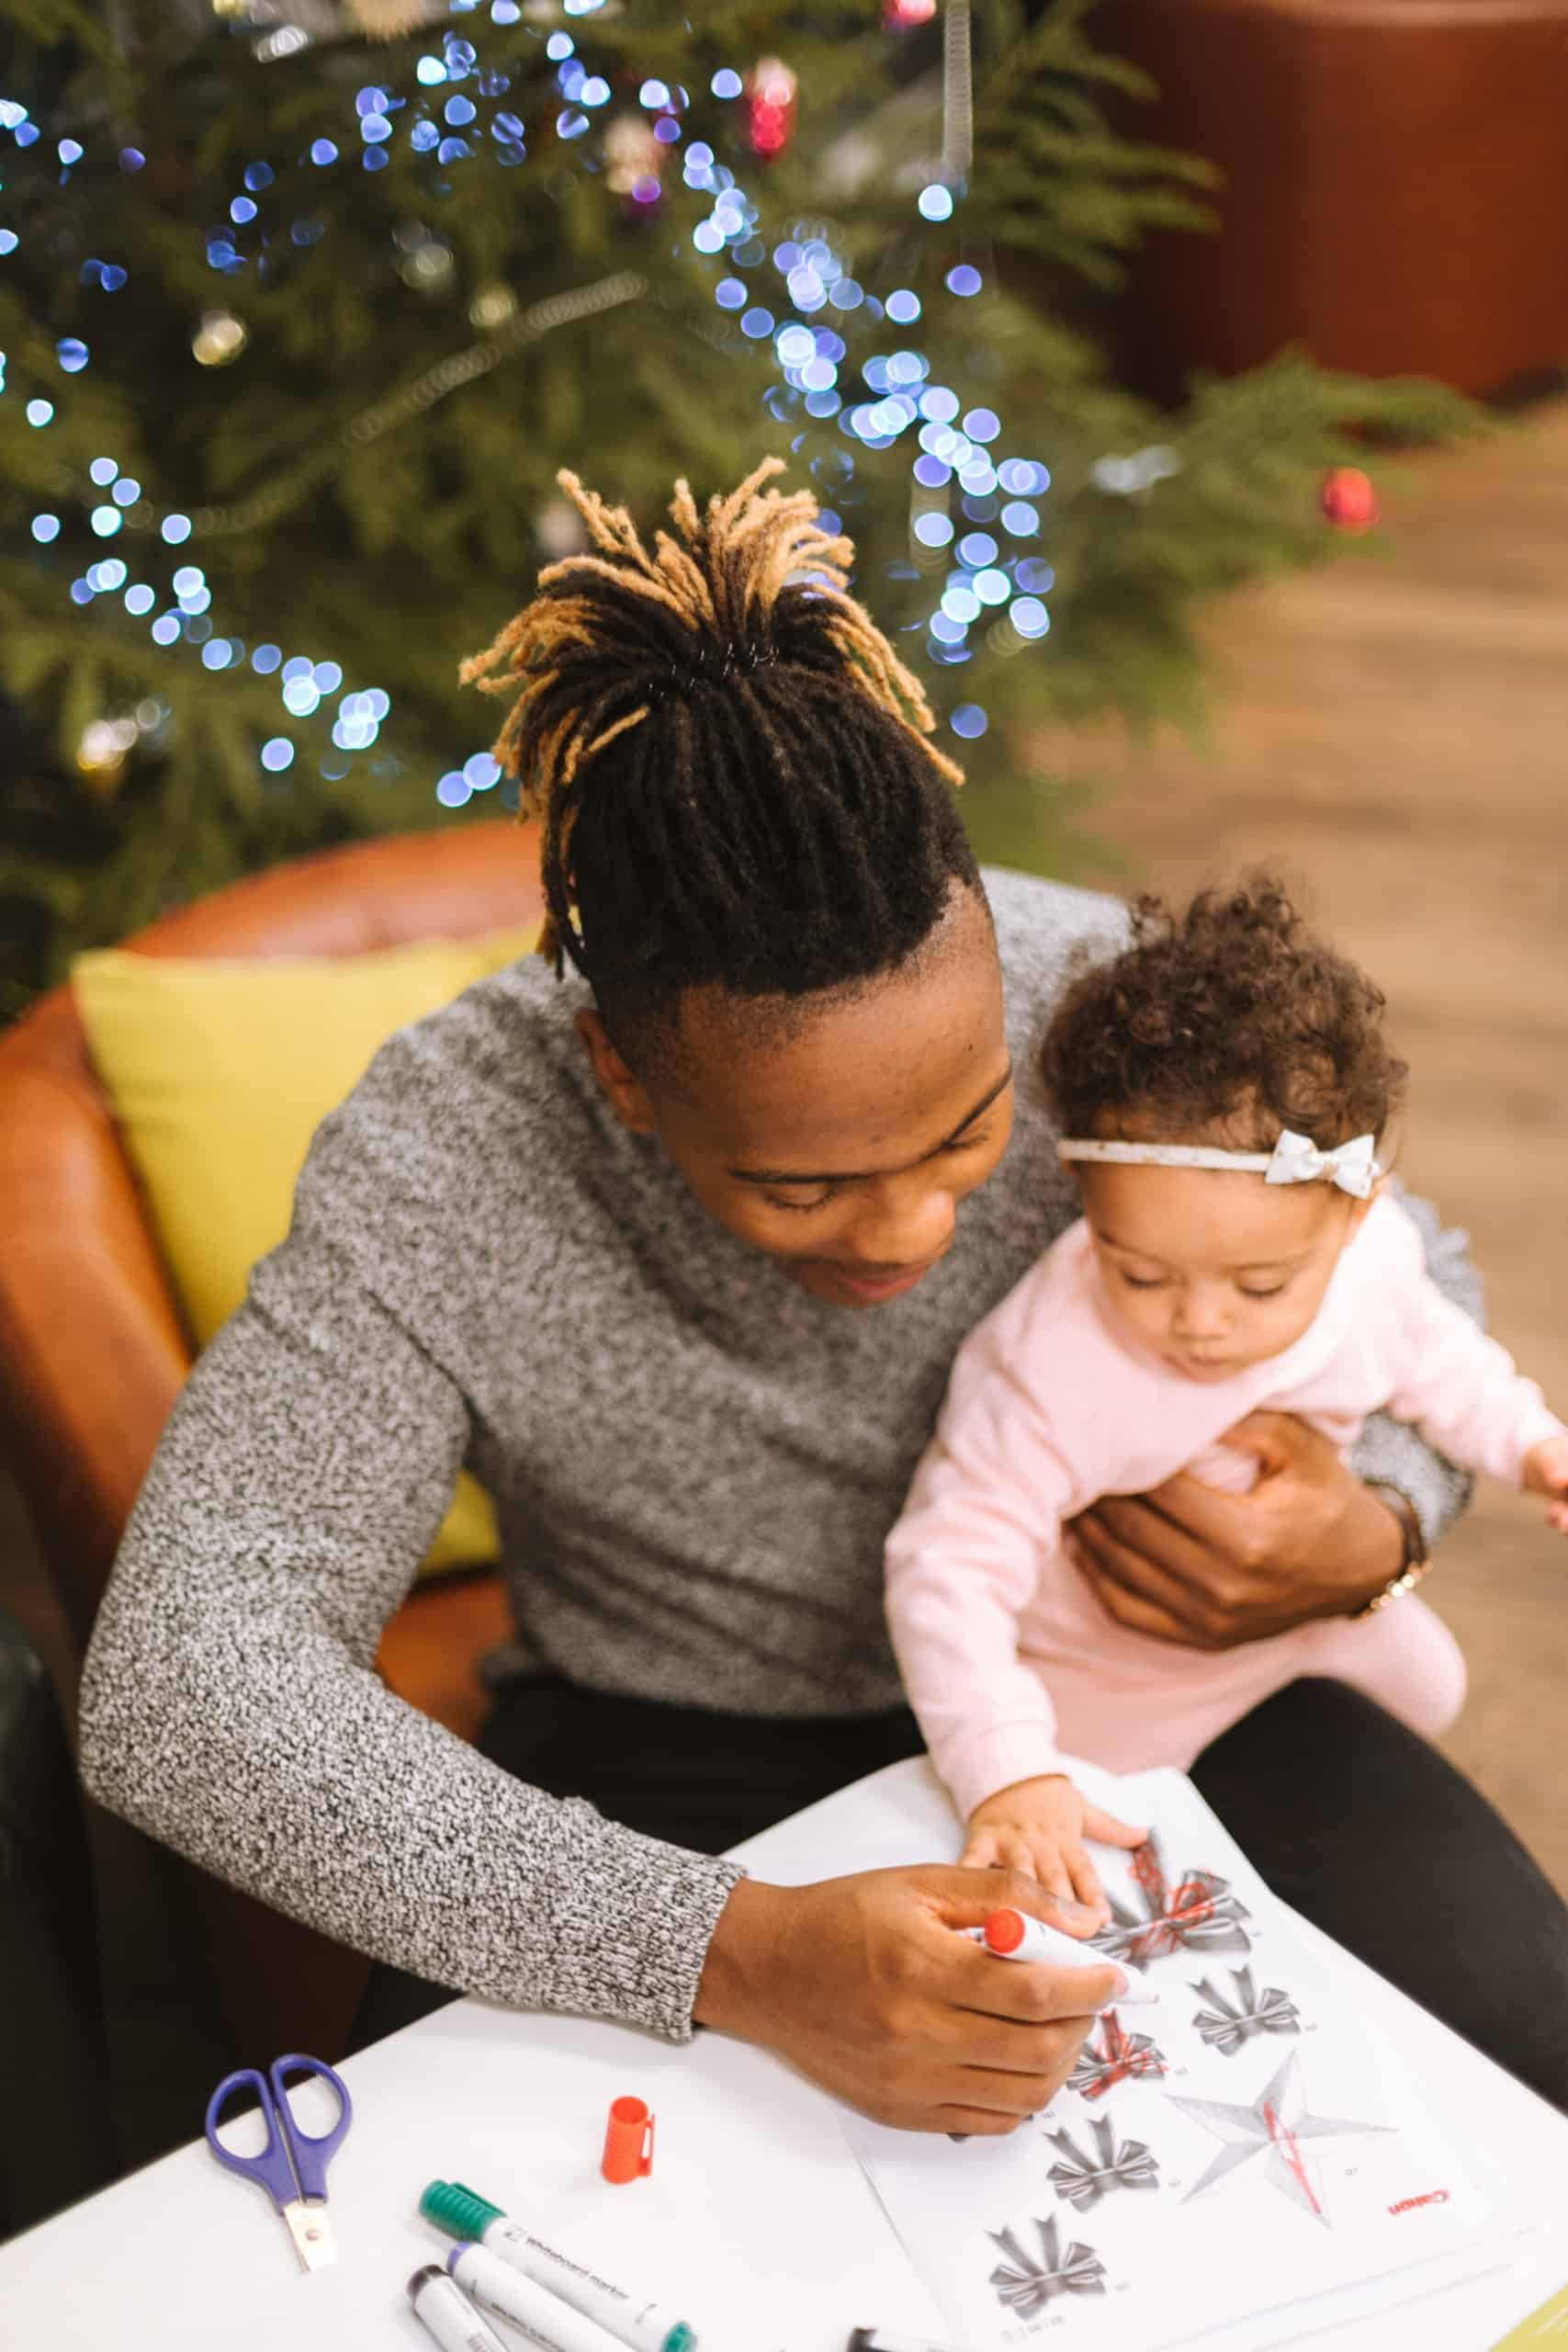 father with daughter coloring for baby's first christmas